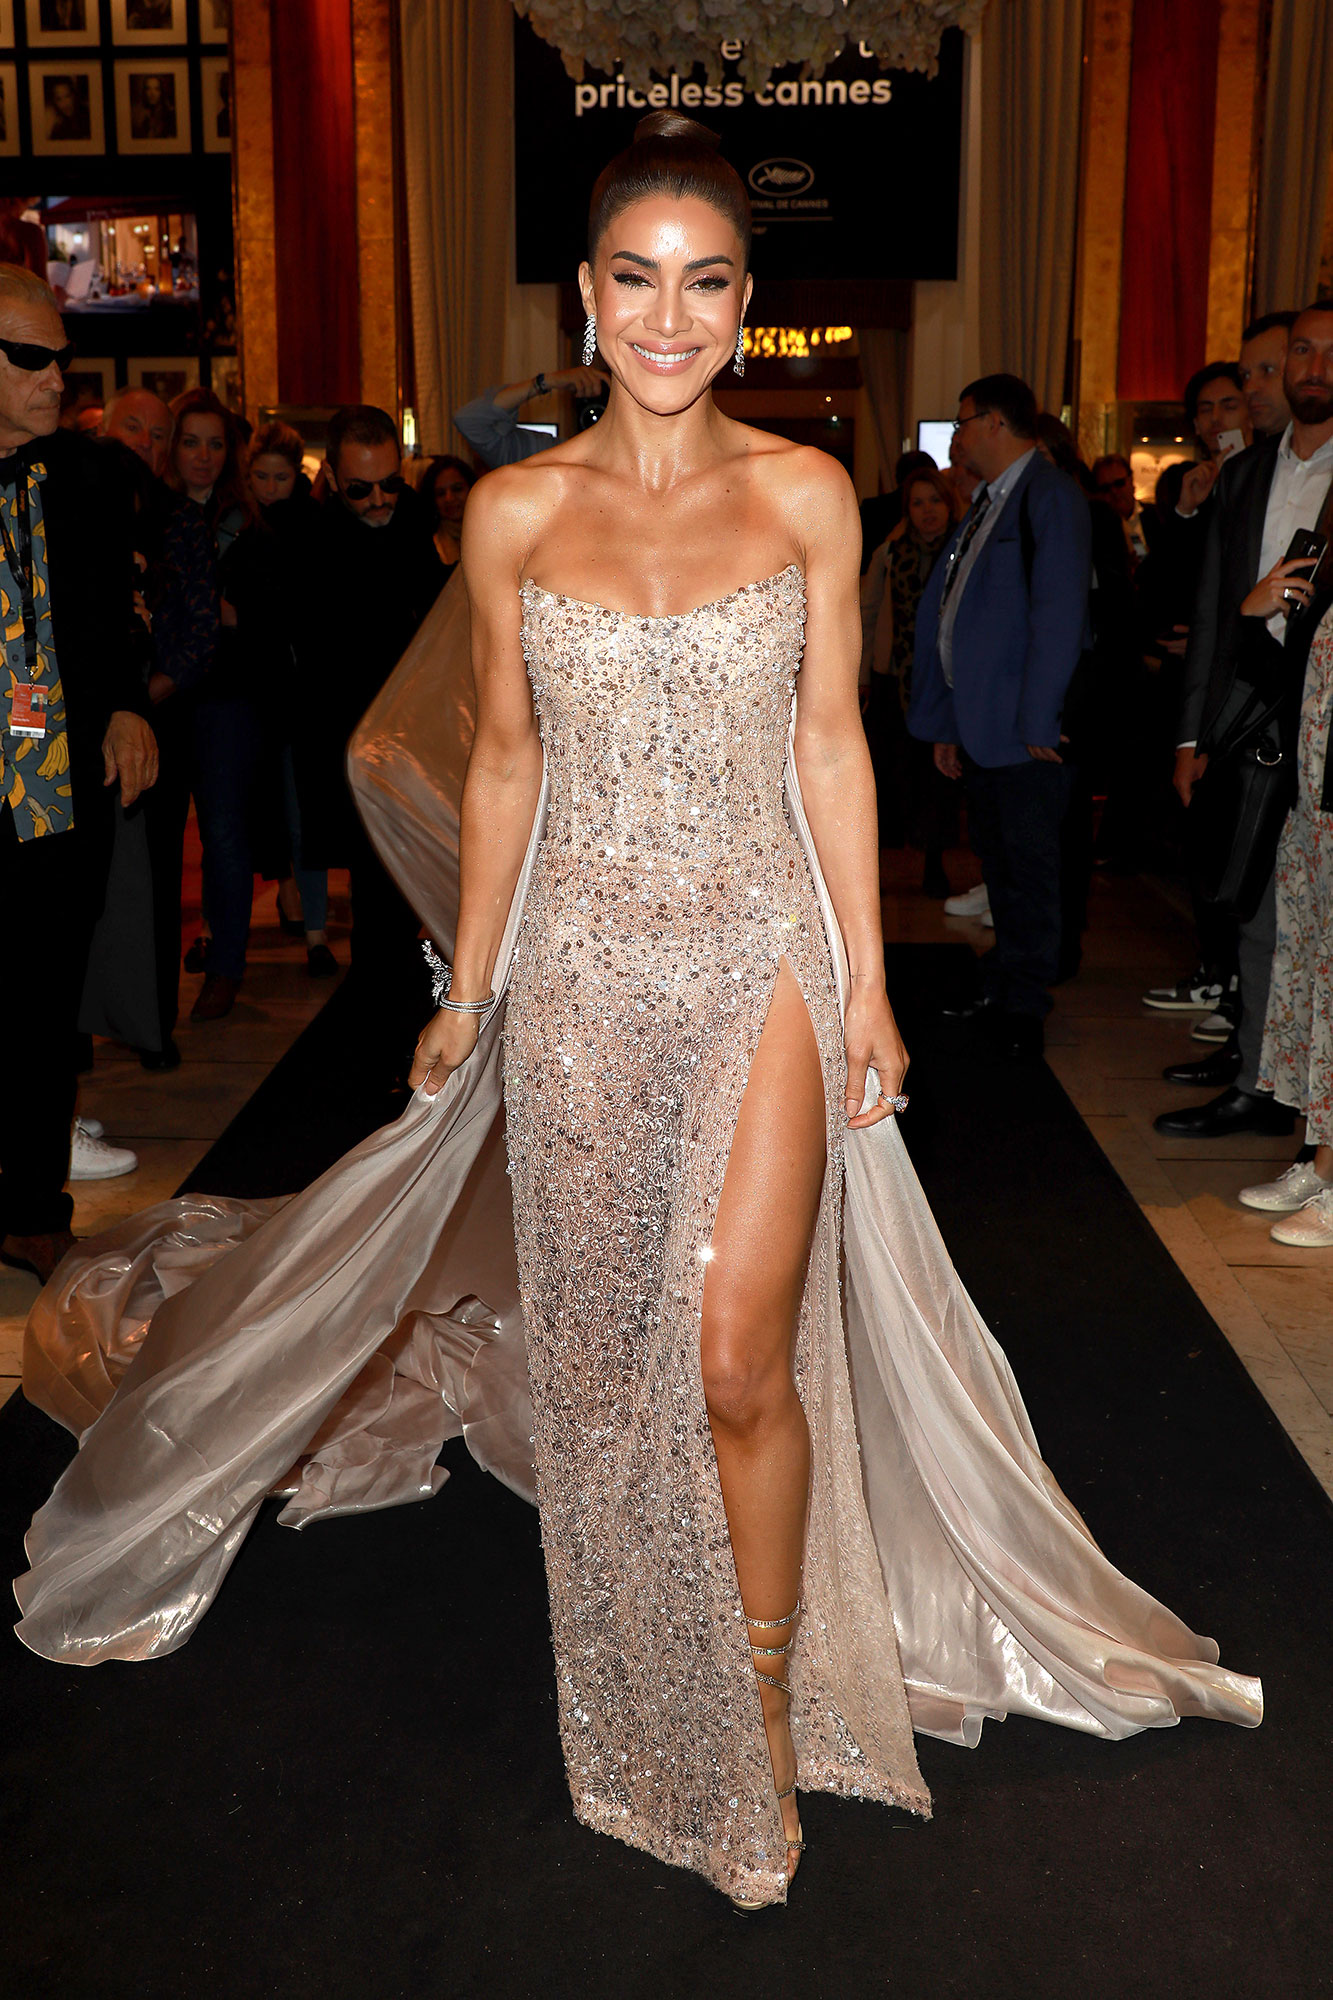 Camilla Coelho Stepping Out in Style at Cannes Film Festival - The blogger showed some skin in a sheer Georges Hobeika number on Sunday, May 19.